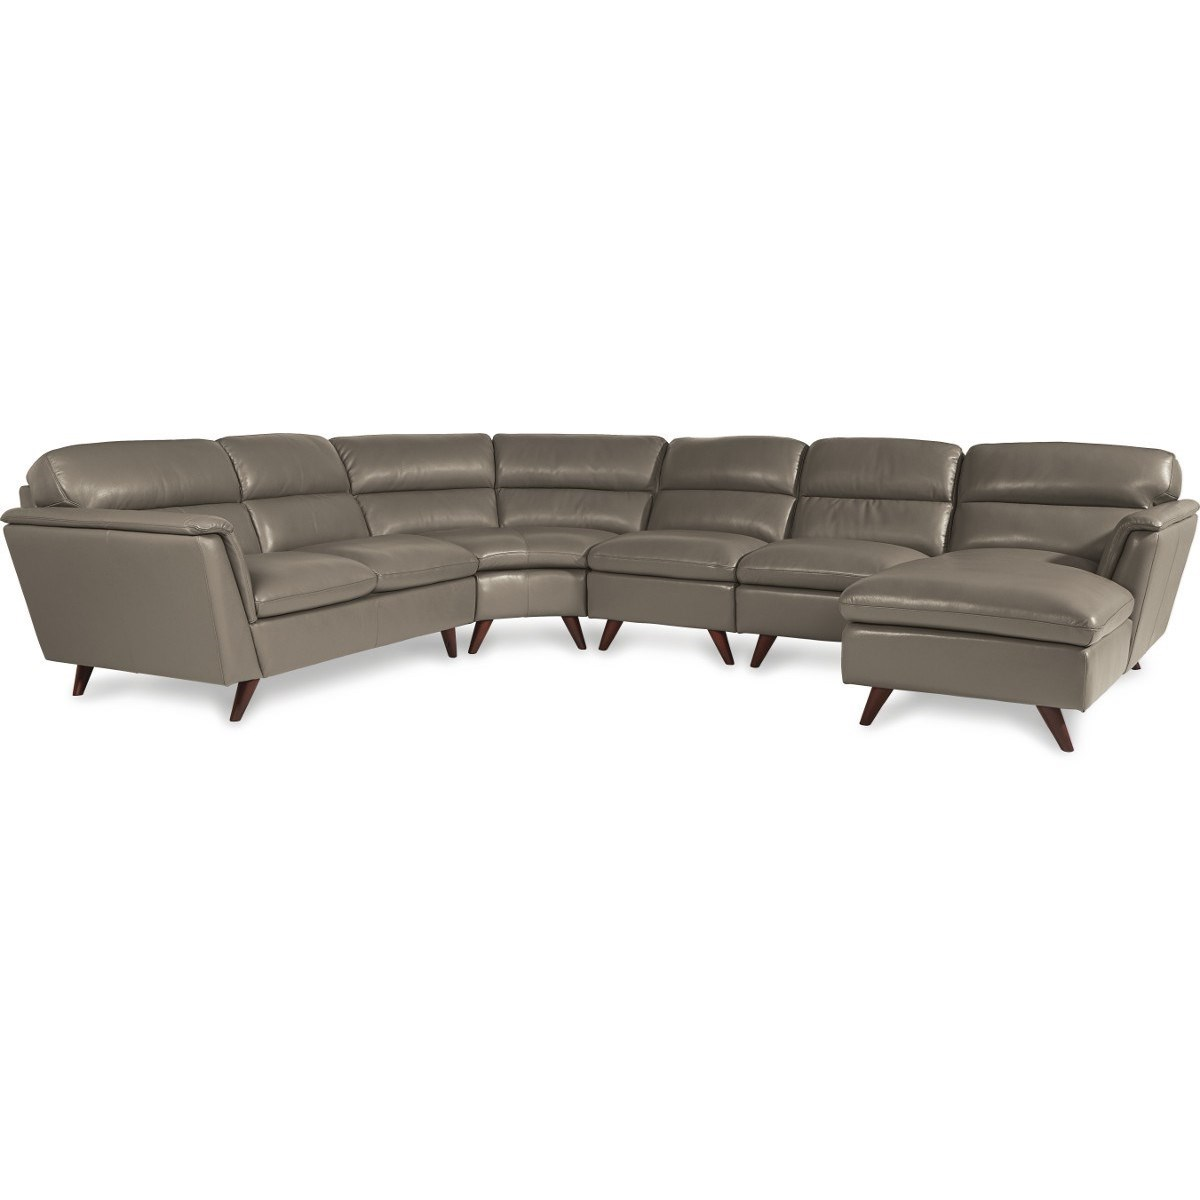 left arm sofa sectional leather with recliner 5 pc sitting chaise by la z